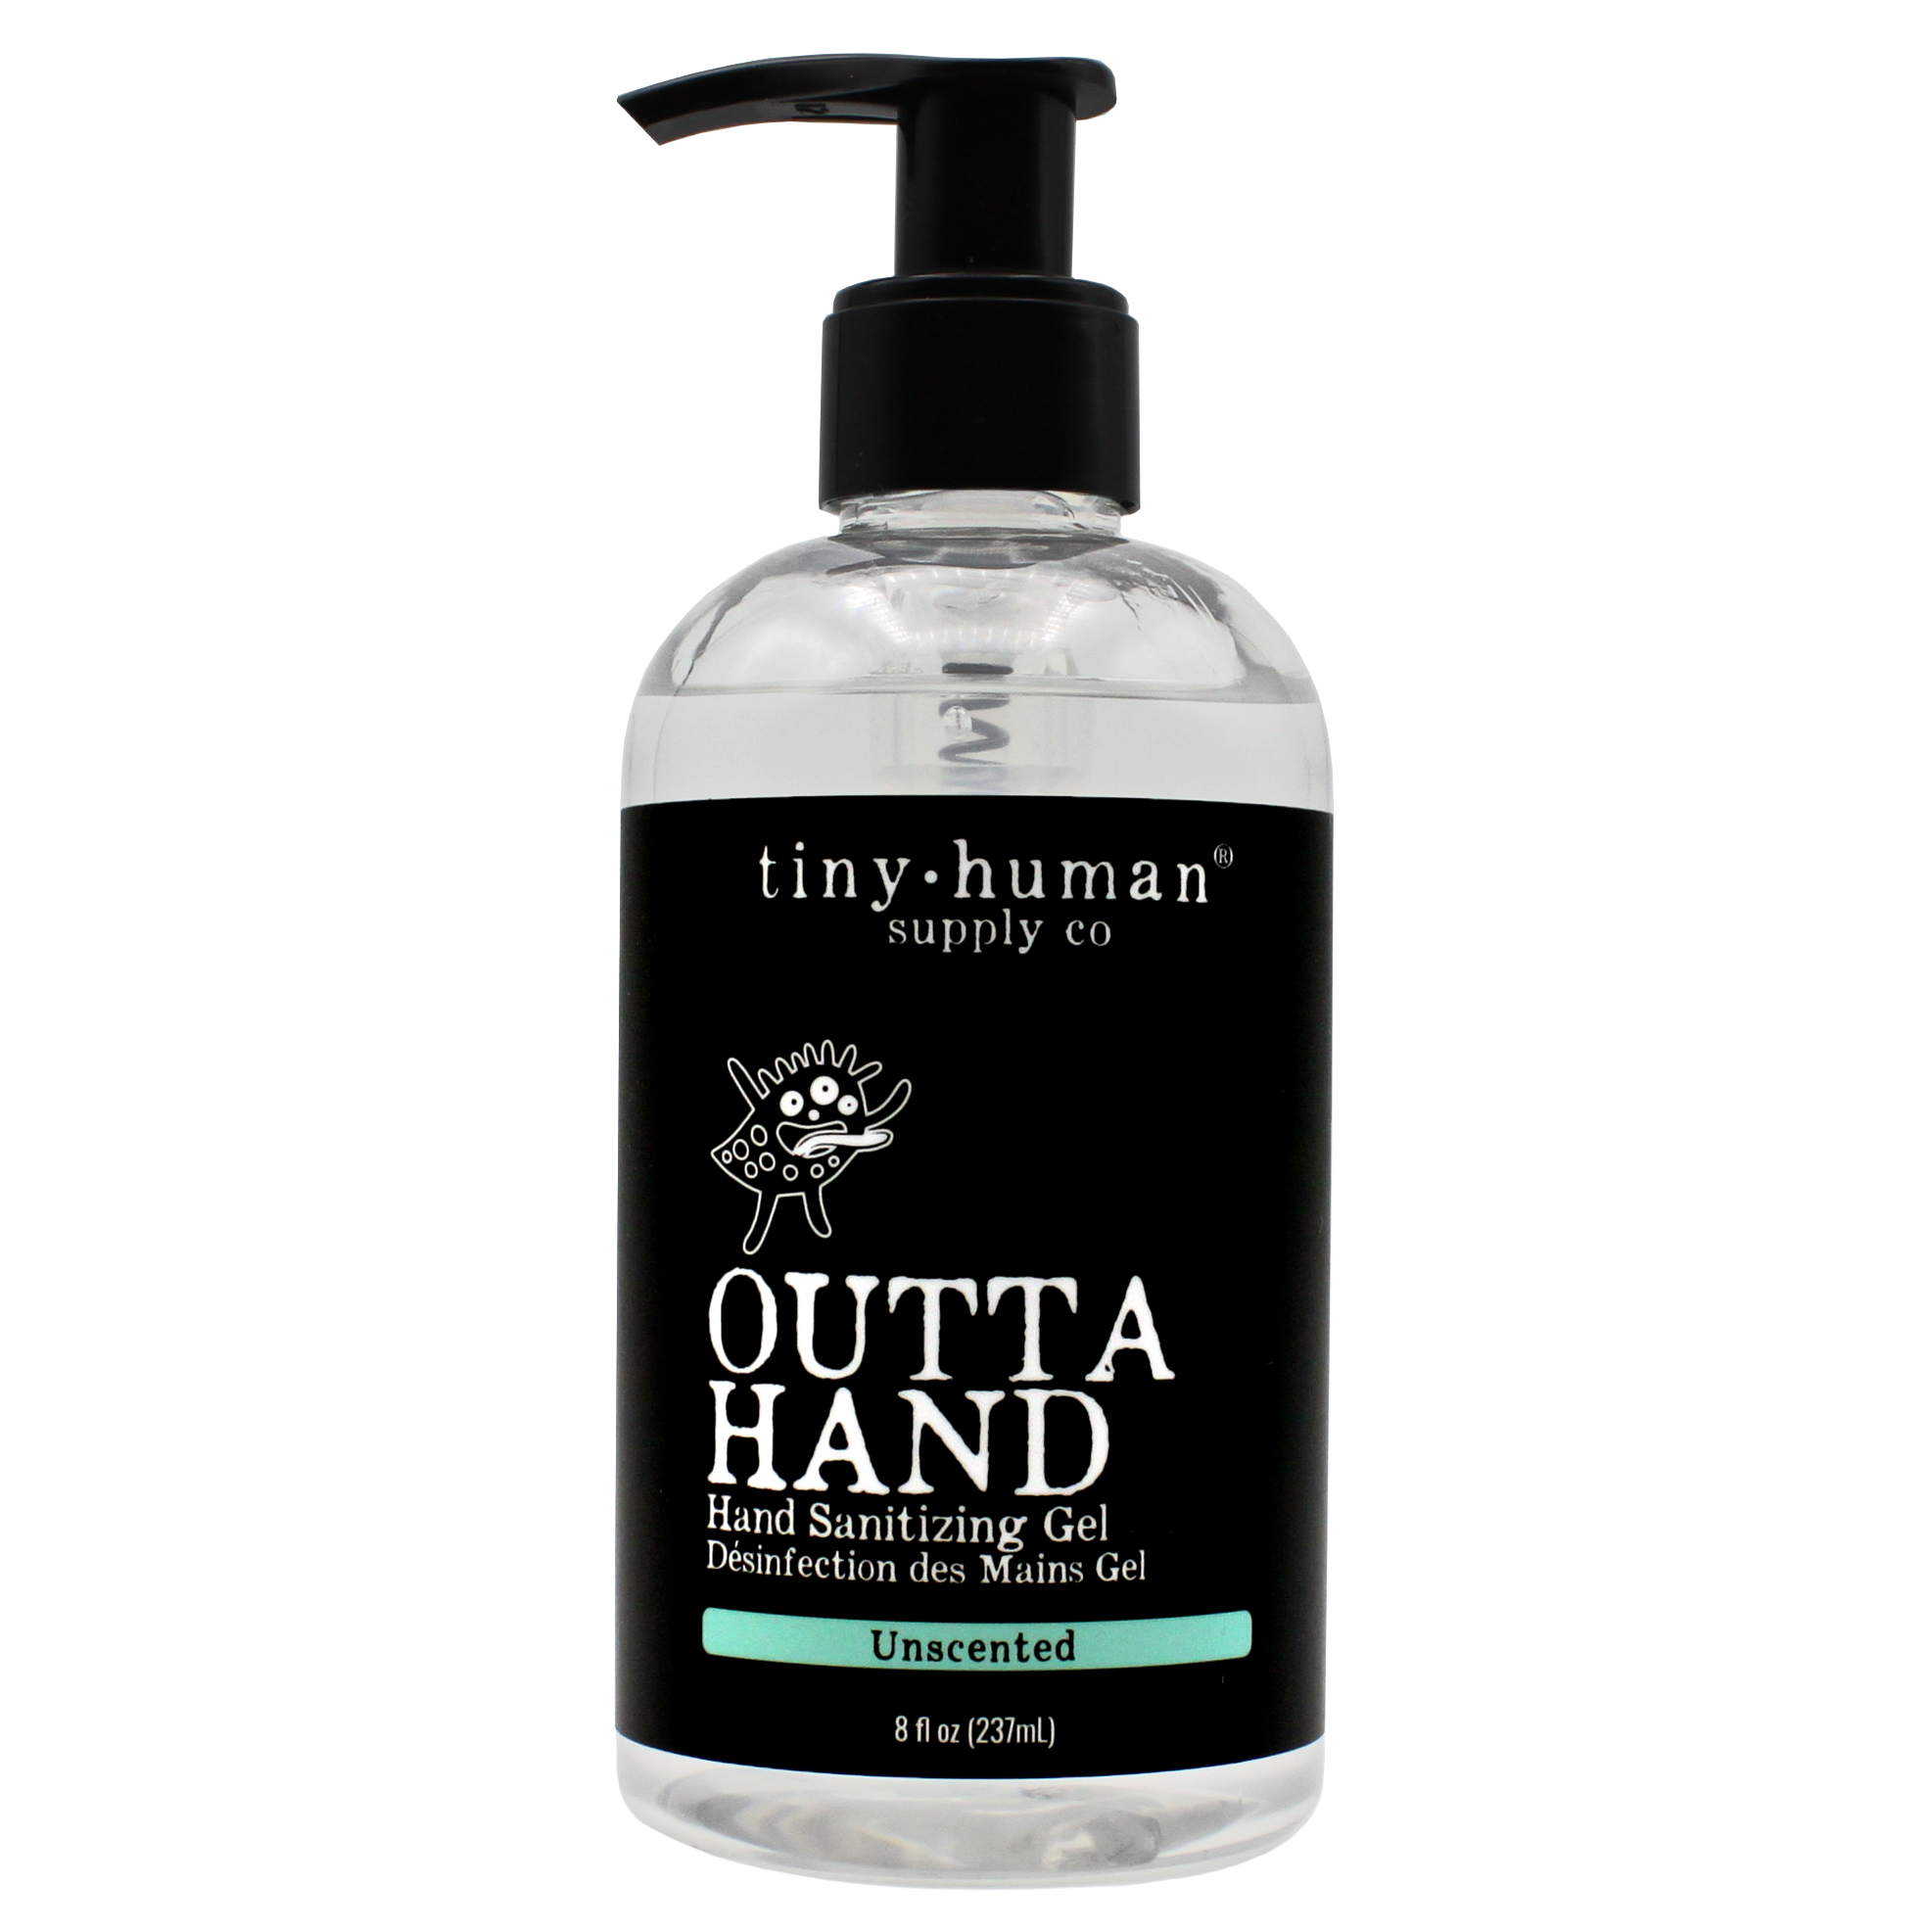 Outta Hand Hand Sanitizing Gel